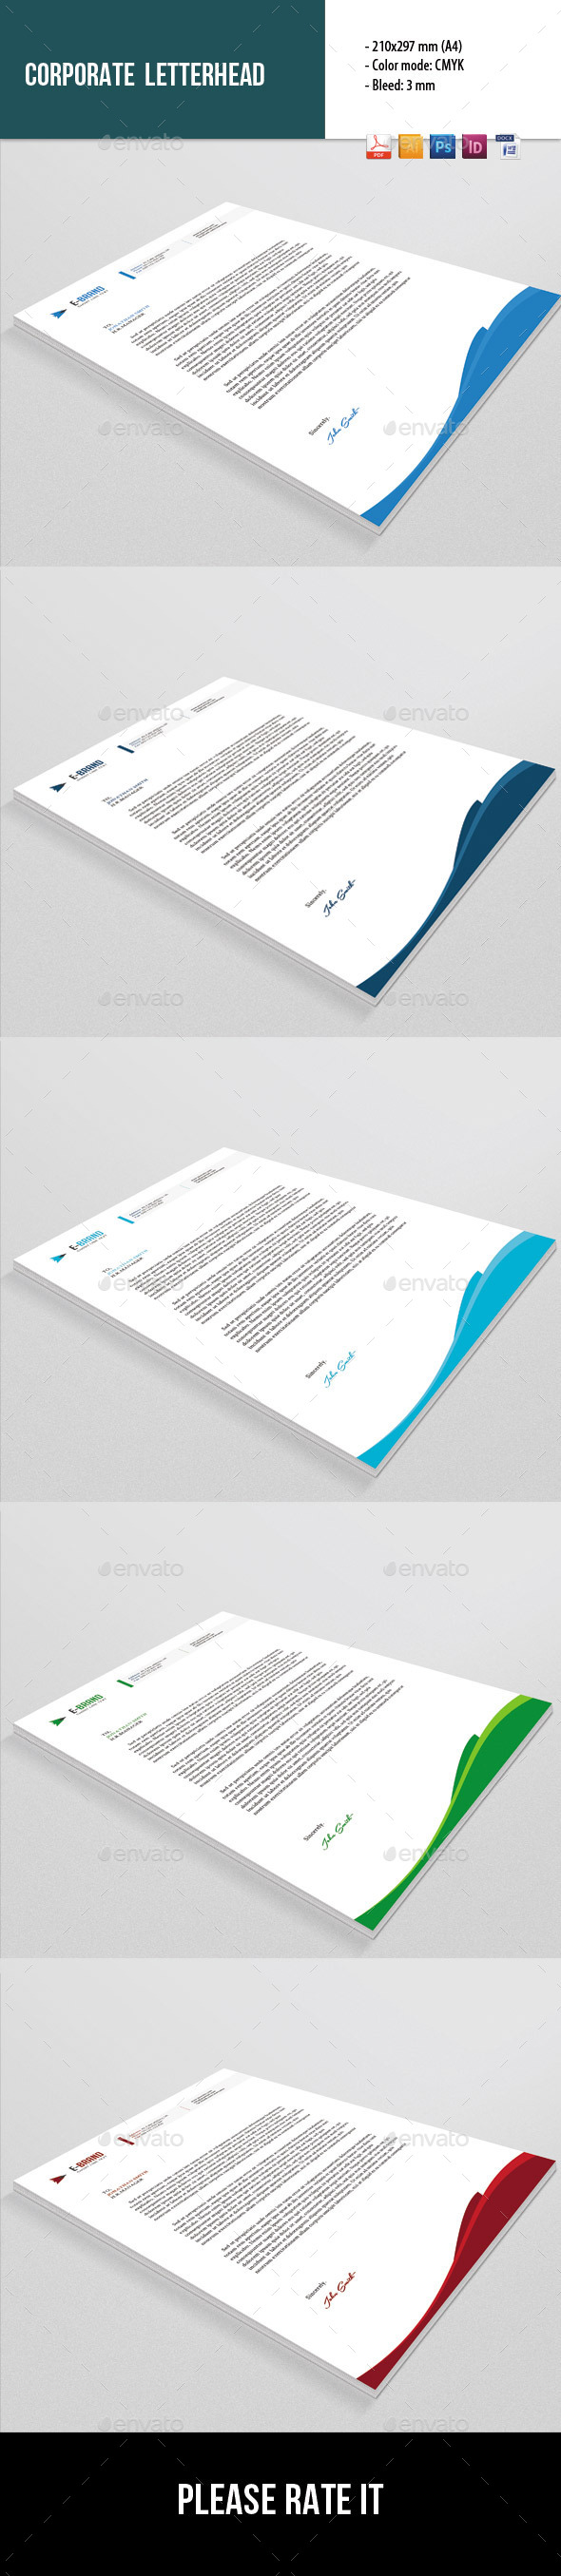 GraphicRiver Corporate Letterhead Template 8912718